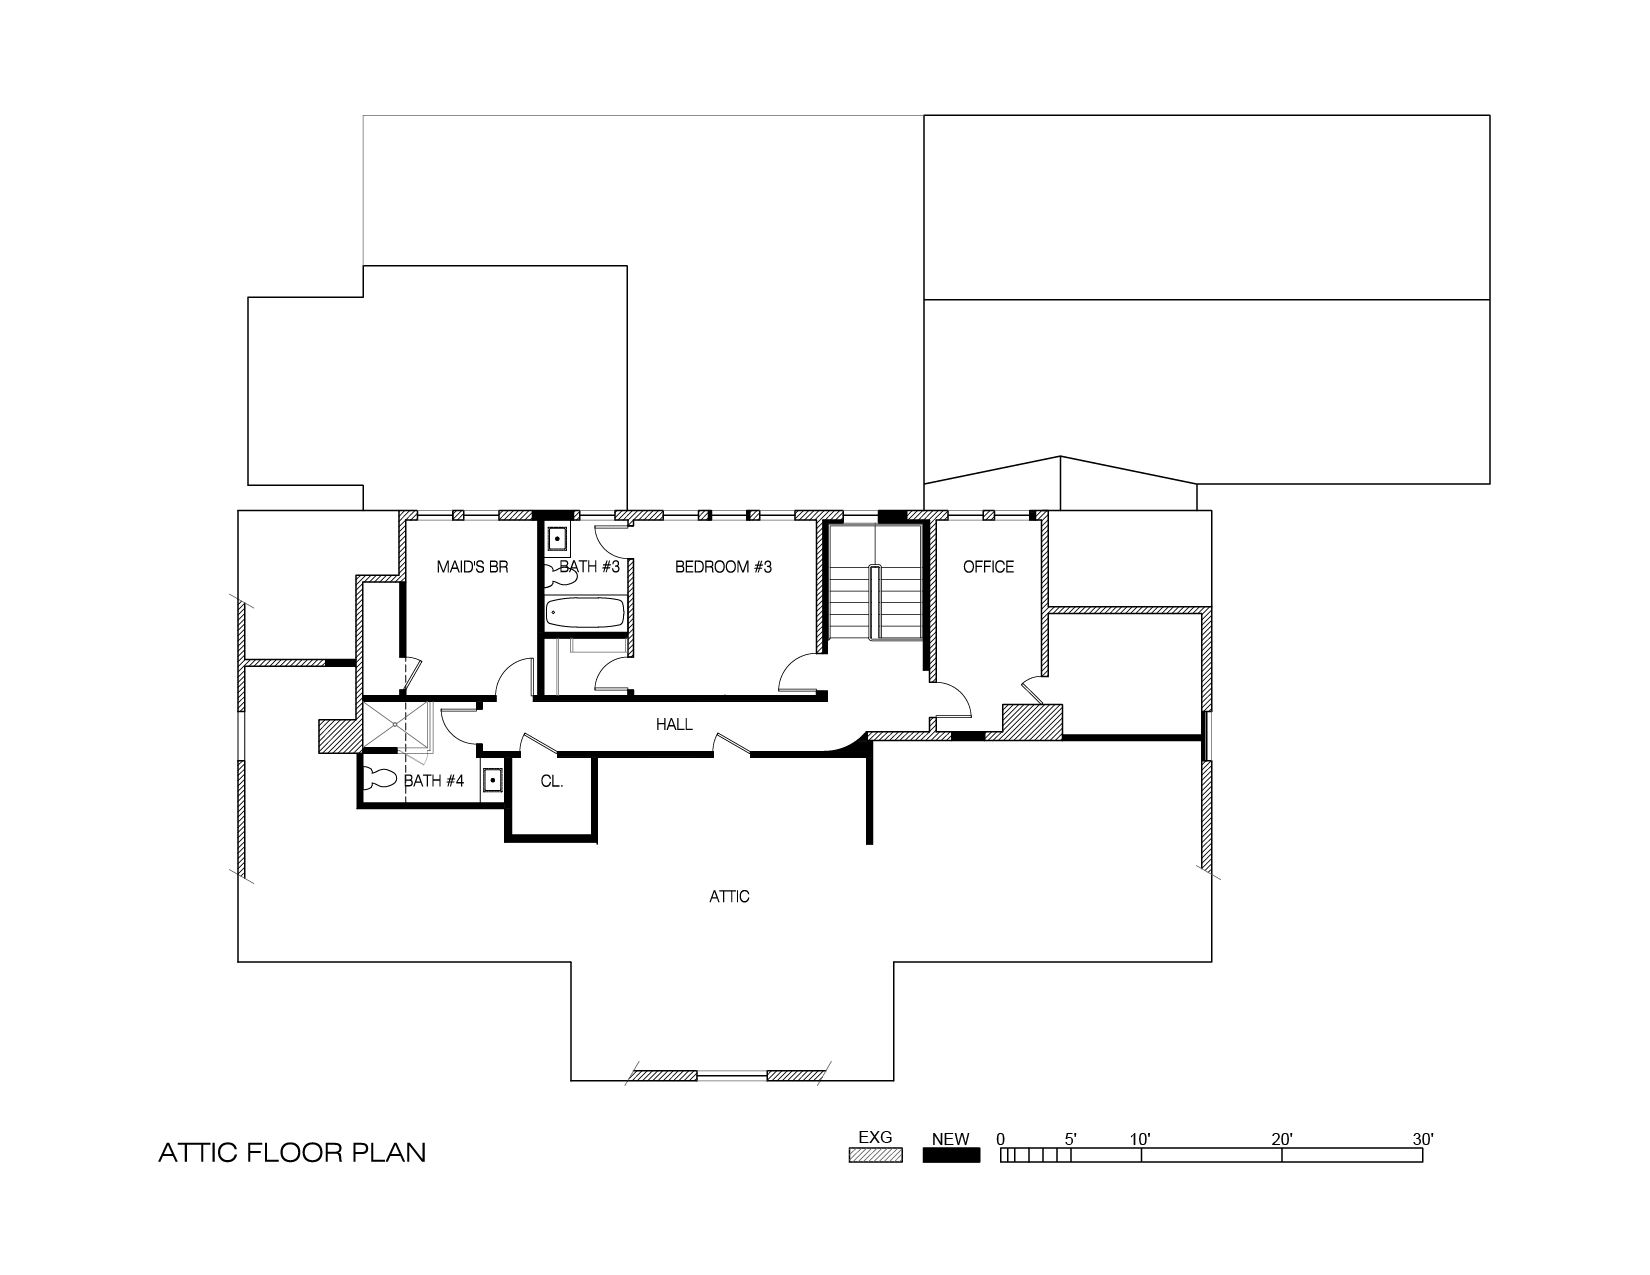 Presentation Drawings Attic Floor Plans-01